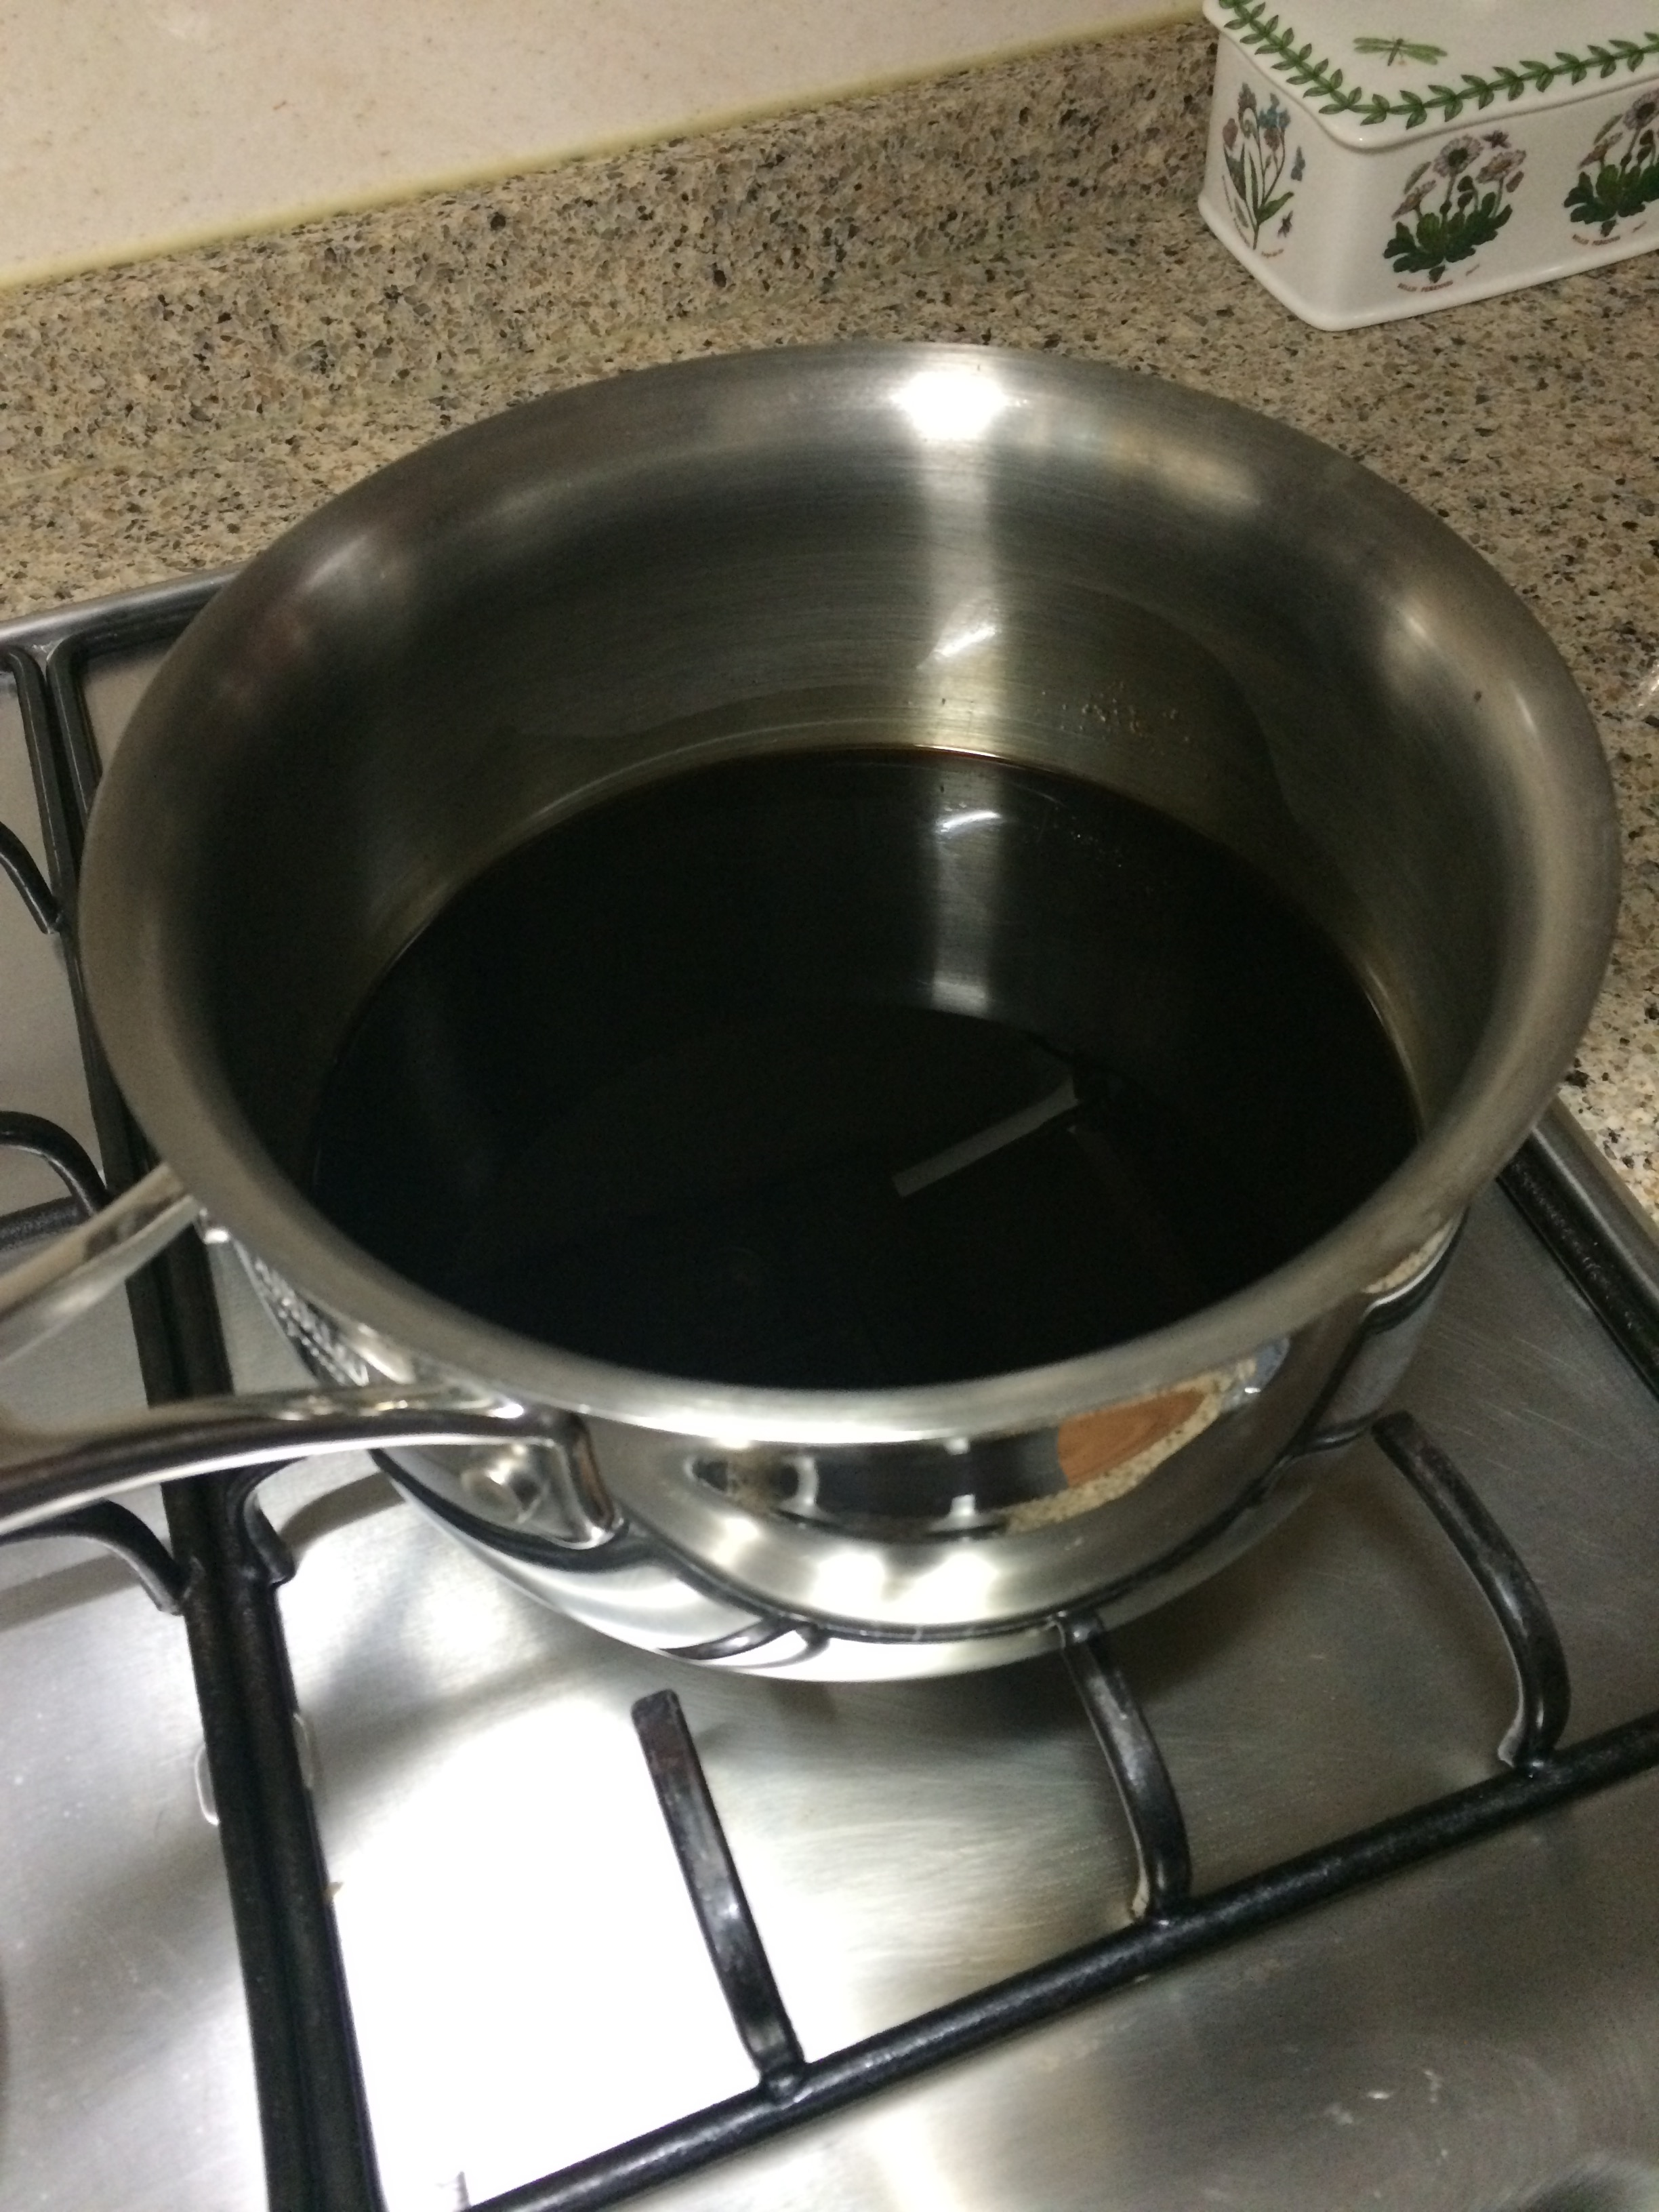 Teriyaki Sauce - Strain out the ingredients